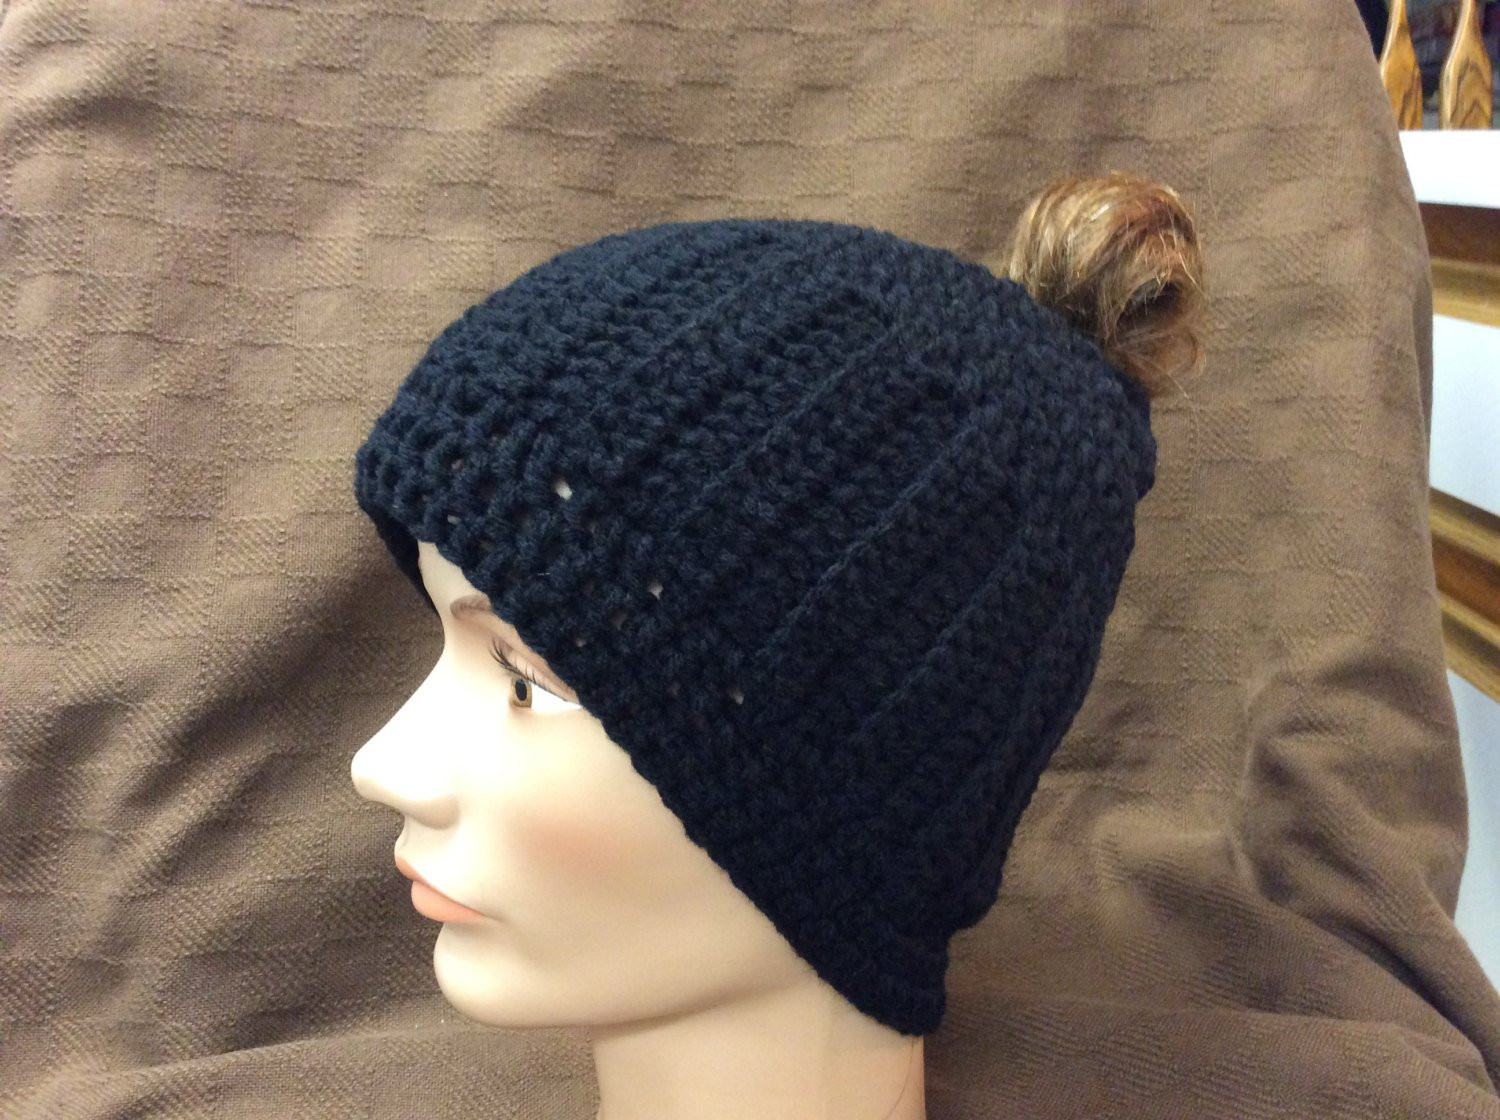 Awesome Man Bun Beanie Black Beanie Guy Ponytail Beanie Hand Stocking Cap with Ponytail Hole Of Unique 36 Models Stocking Cap with Ponytail Hole